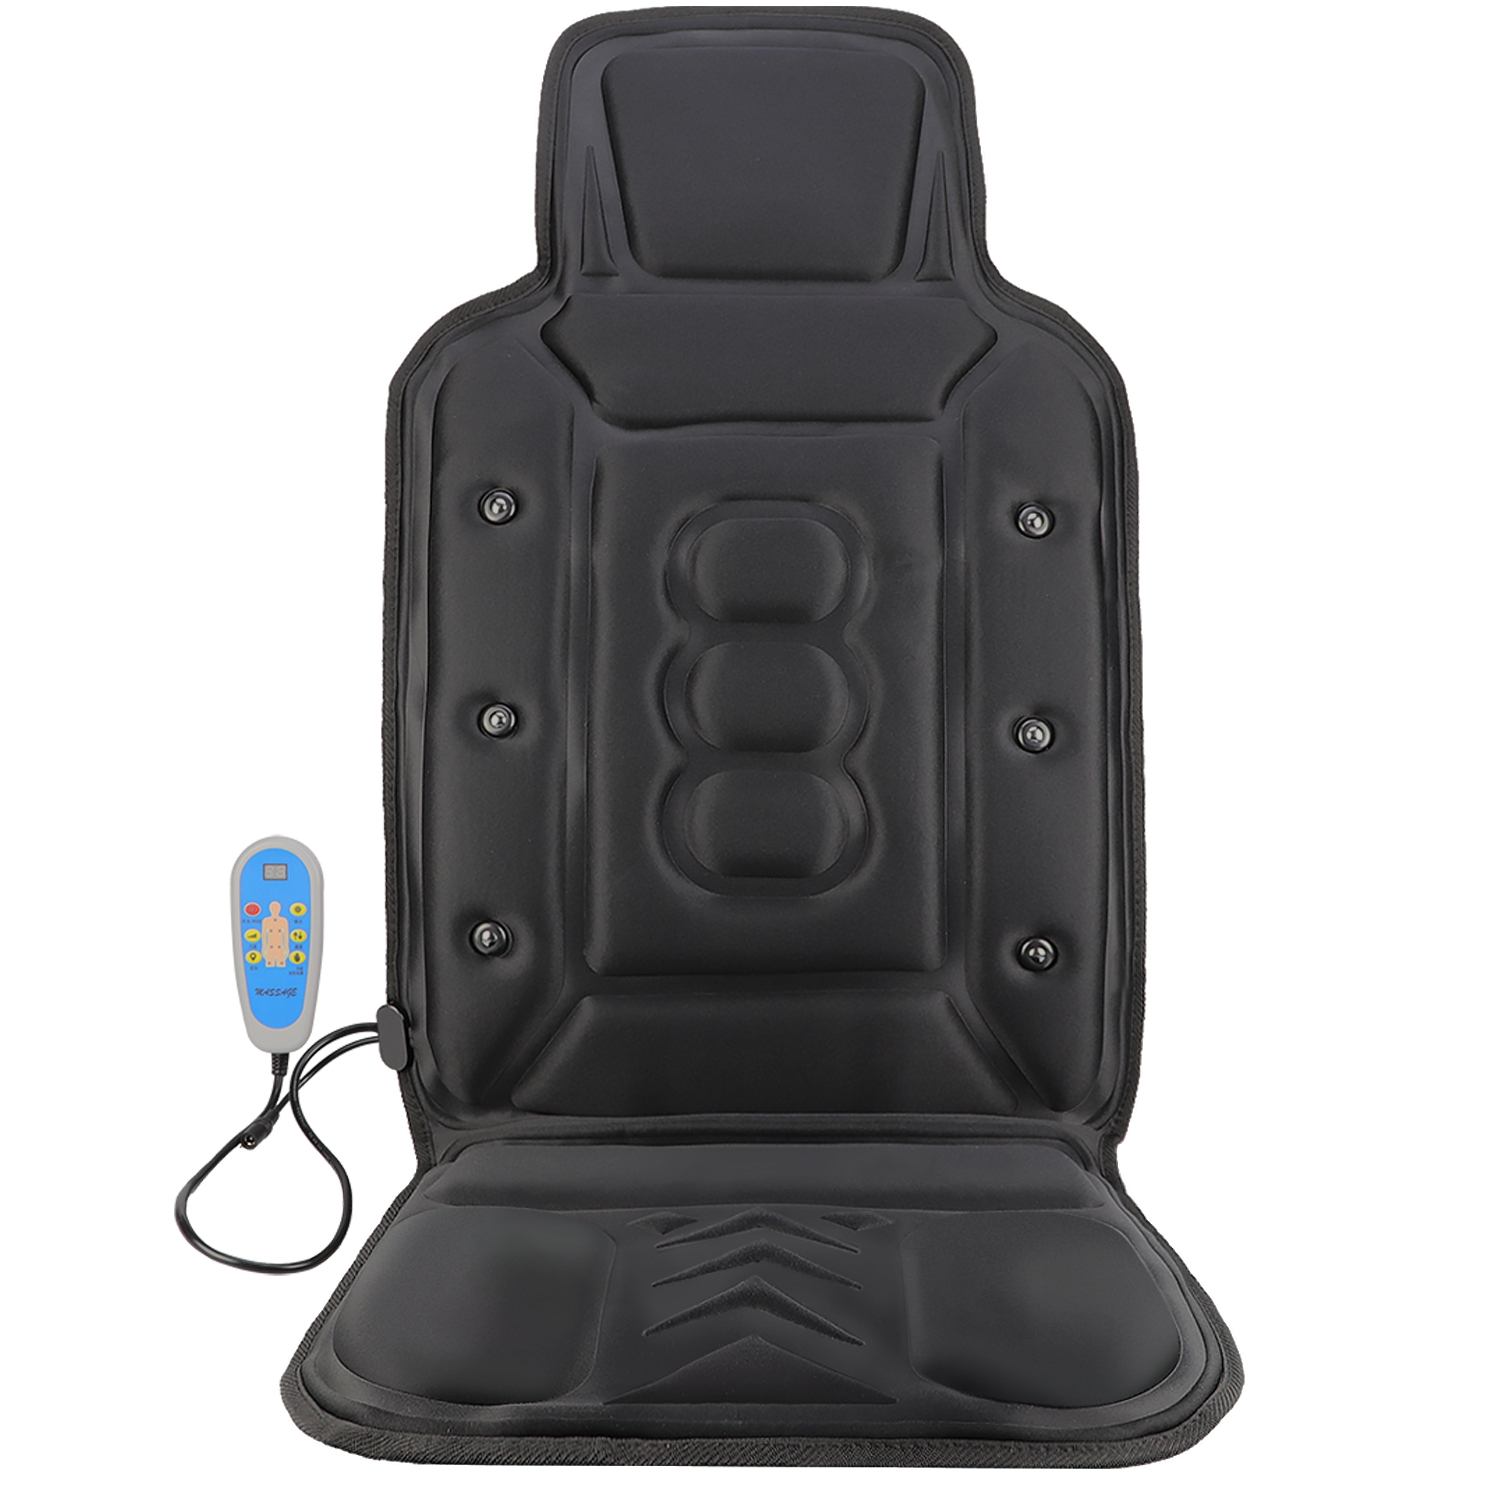 Luxury & medium massage car cushion with vibration 、heat and magnet function